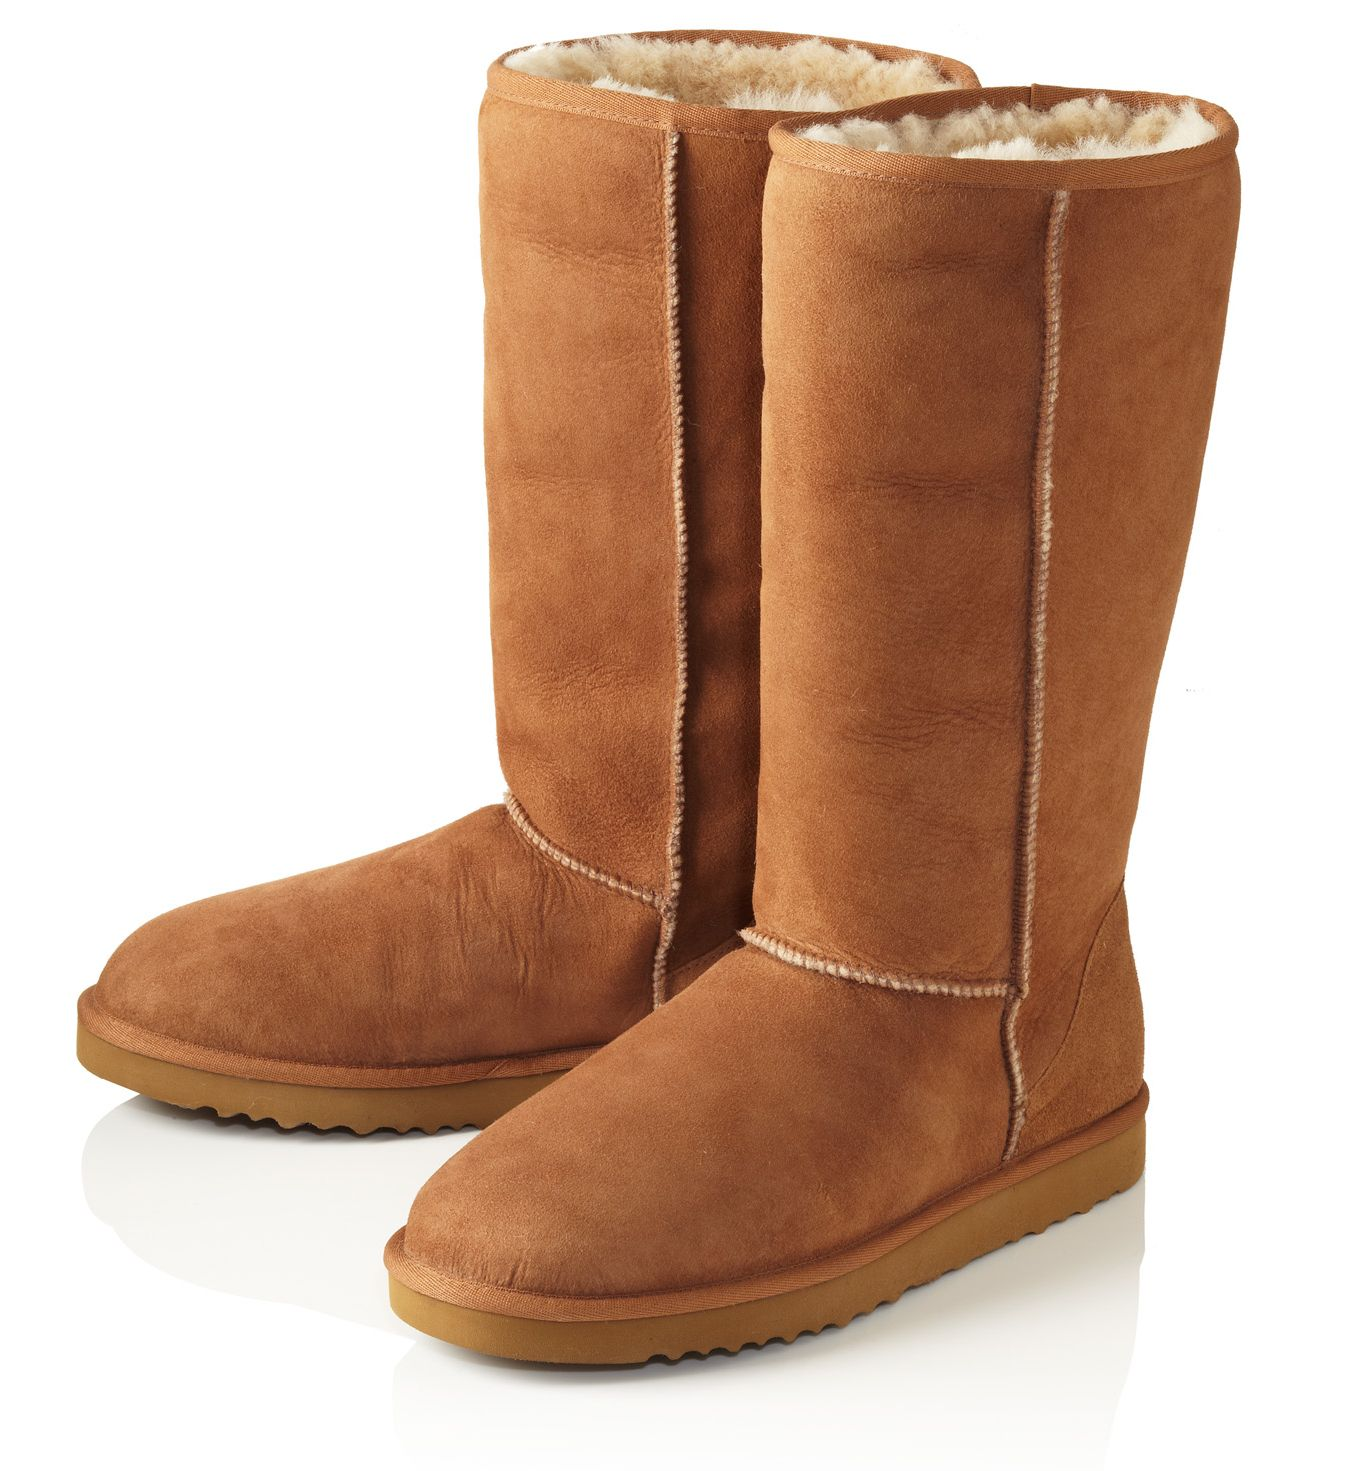 Classic tall boots